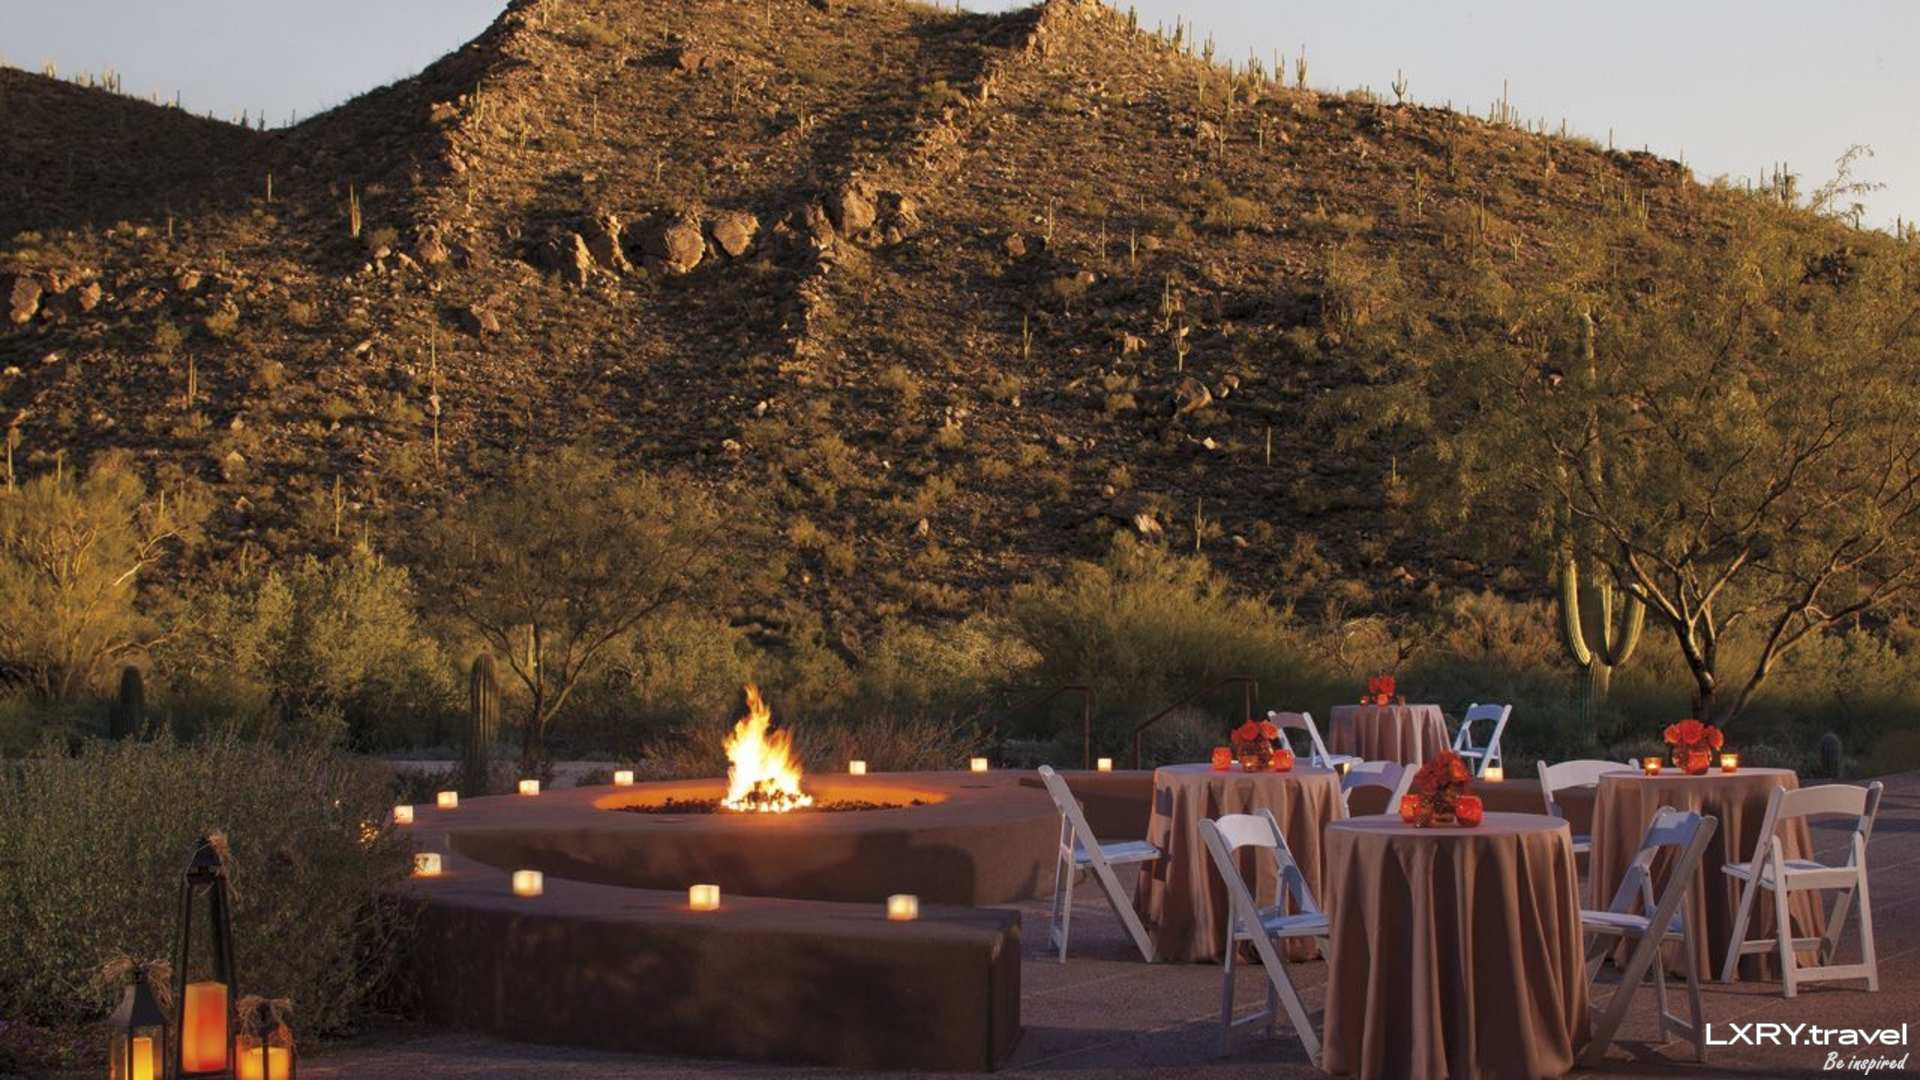 The Ritz-Carlton, Dove Mountain 47/56